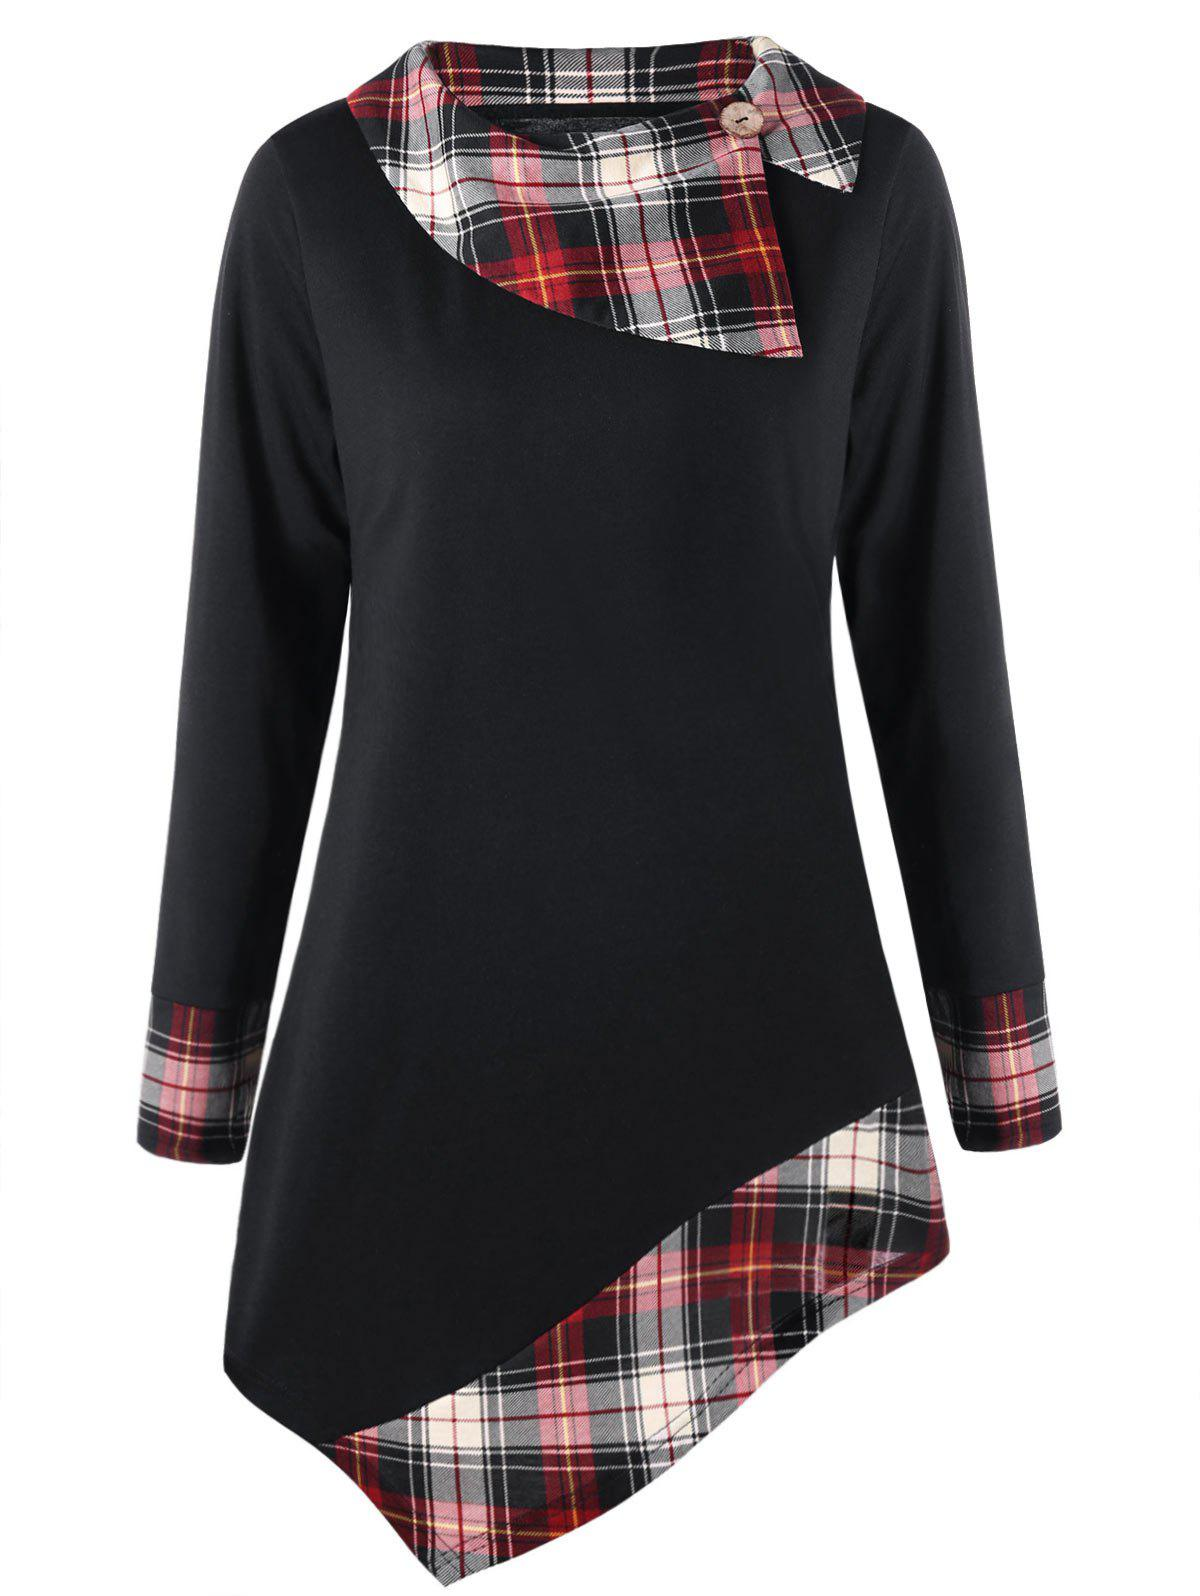 Plus Size Plaid Trim Asymmetrical TeeWOMEN<br><br>Size: XL; Color: BLACK; Material: Polyester,Spandex; Shirt Length: Long; Sleeve Length: Full; Collar: Turn-down Collar; Style: Casual; Season: Fall,Spring; Pattern Type: Plaid; Weight: 0.3100kg; Package Contents: 1 x Top;